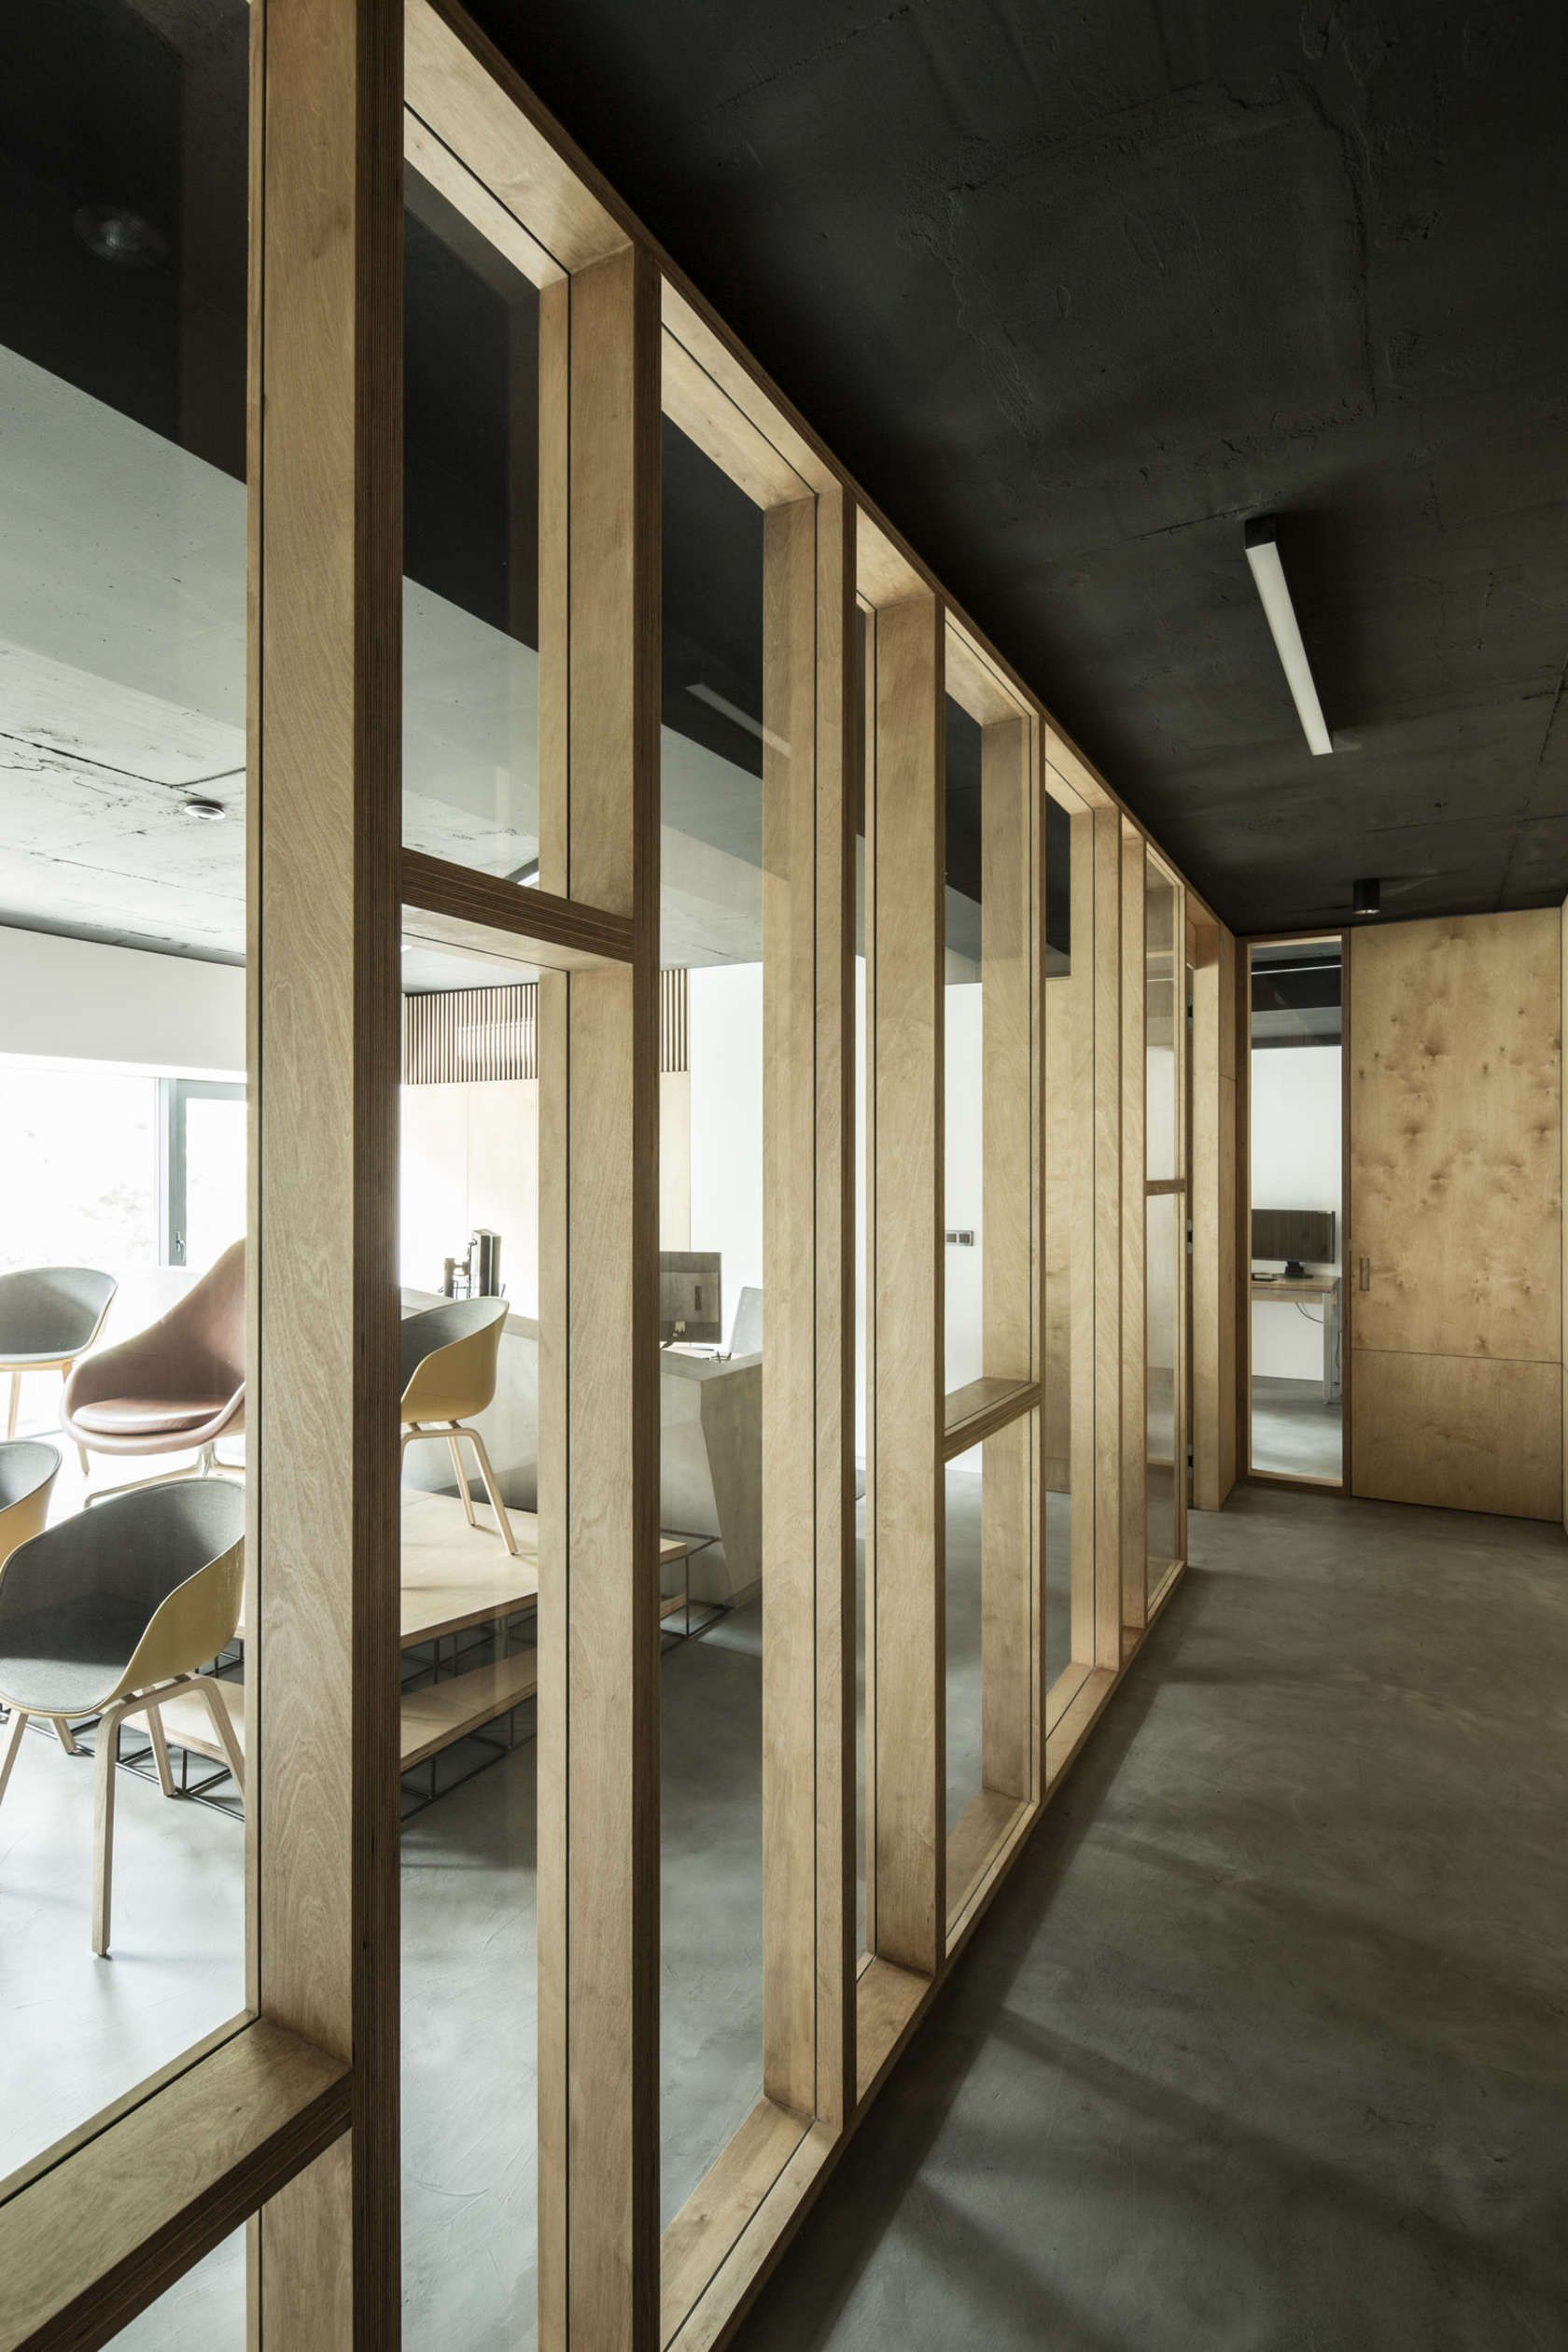 The Interior Of A Postproduction Studio Framehouse Is Located In A  # Neat Muebles Merida